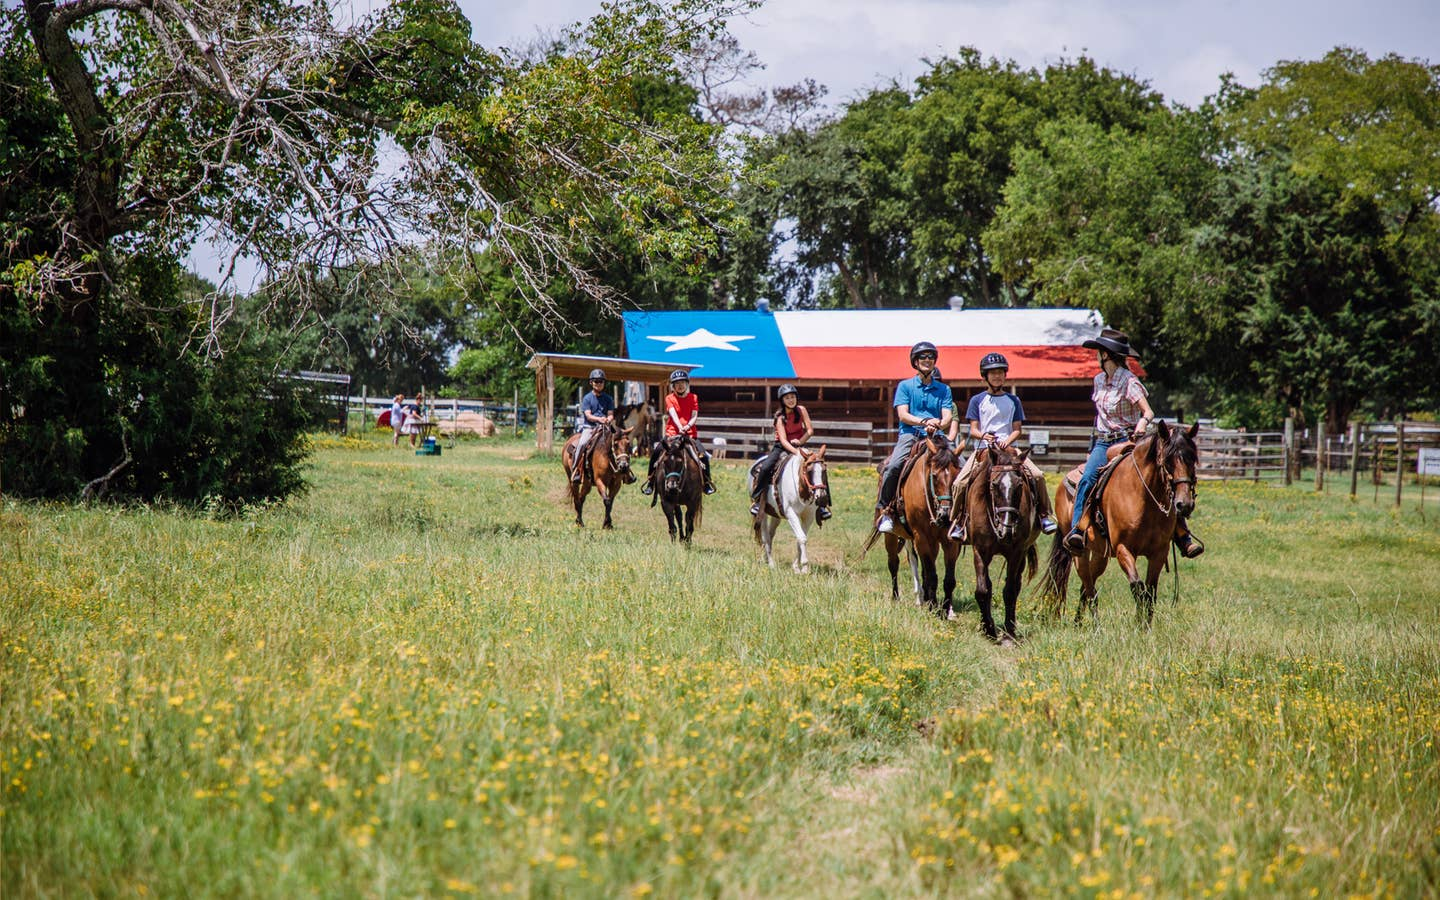 Group of guests riding horses through a field at Villages Resort in Flint, Texas.